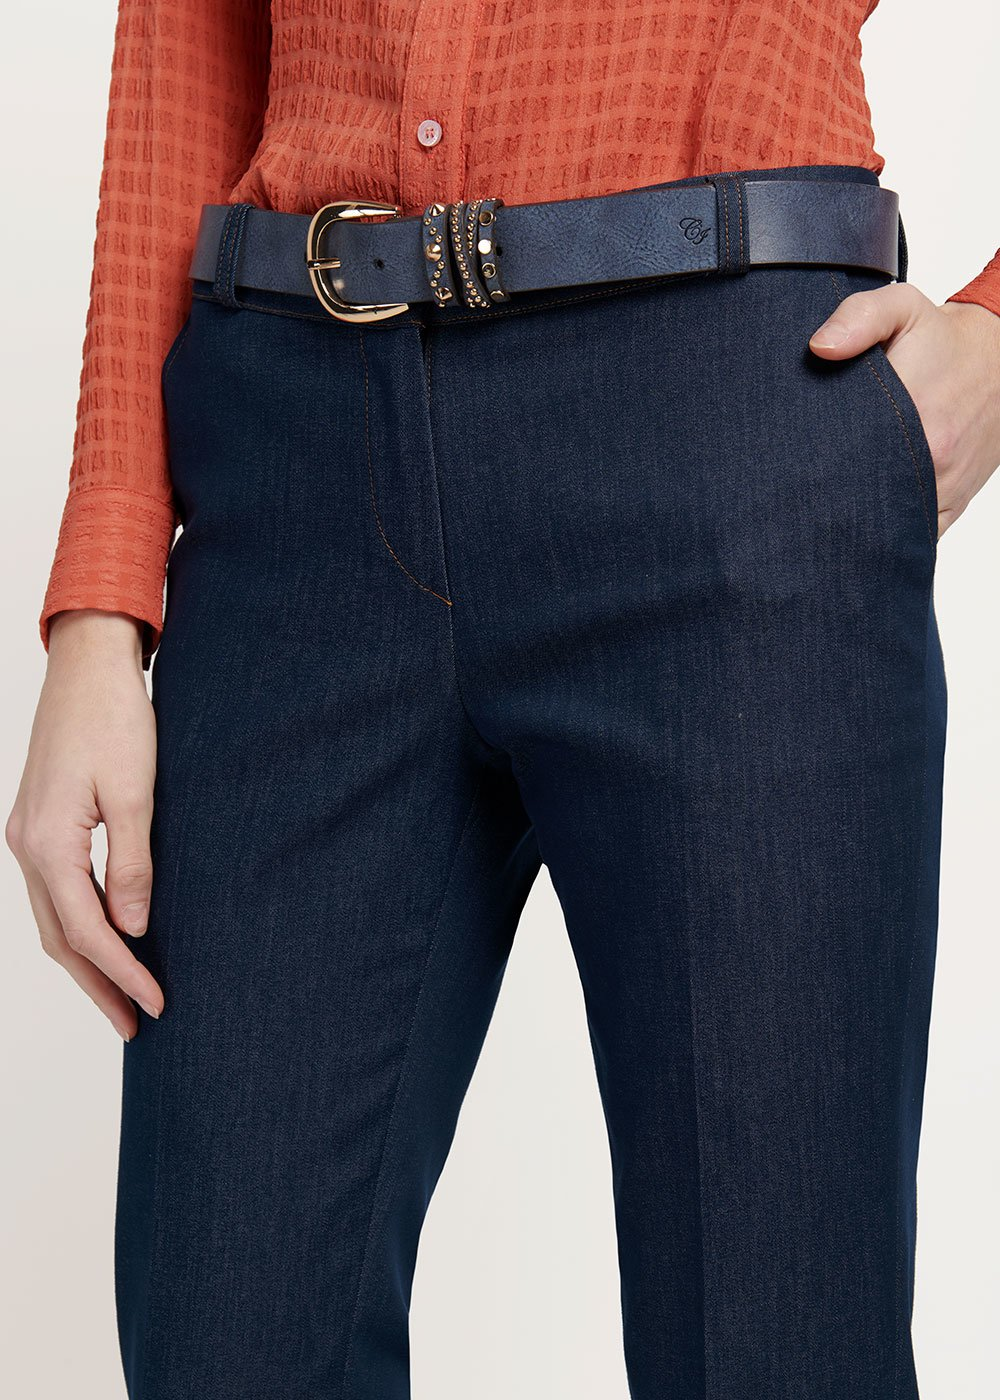 Chili belt with stud detail - Medium Blue - Woman